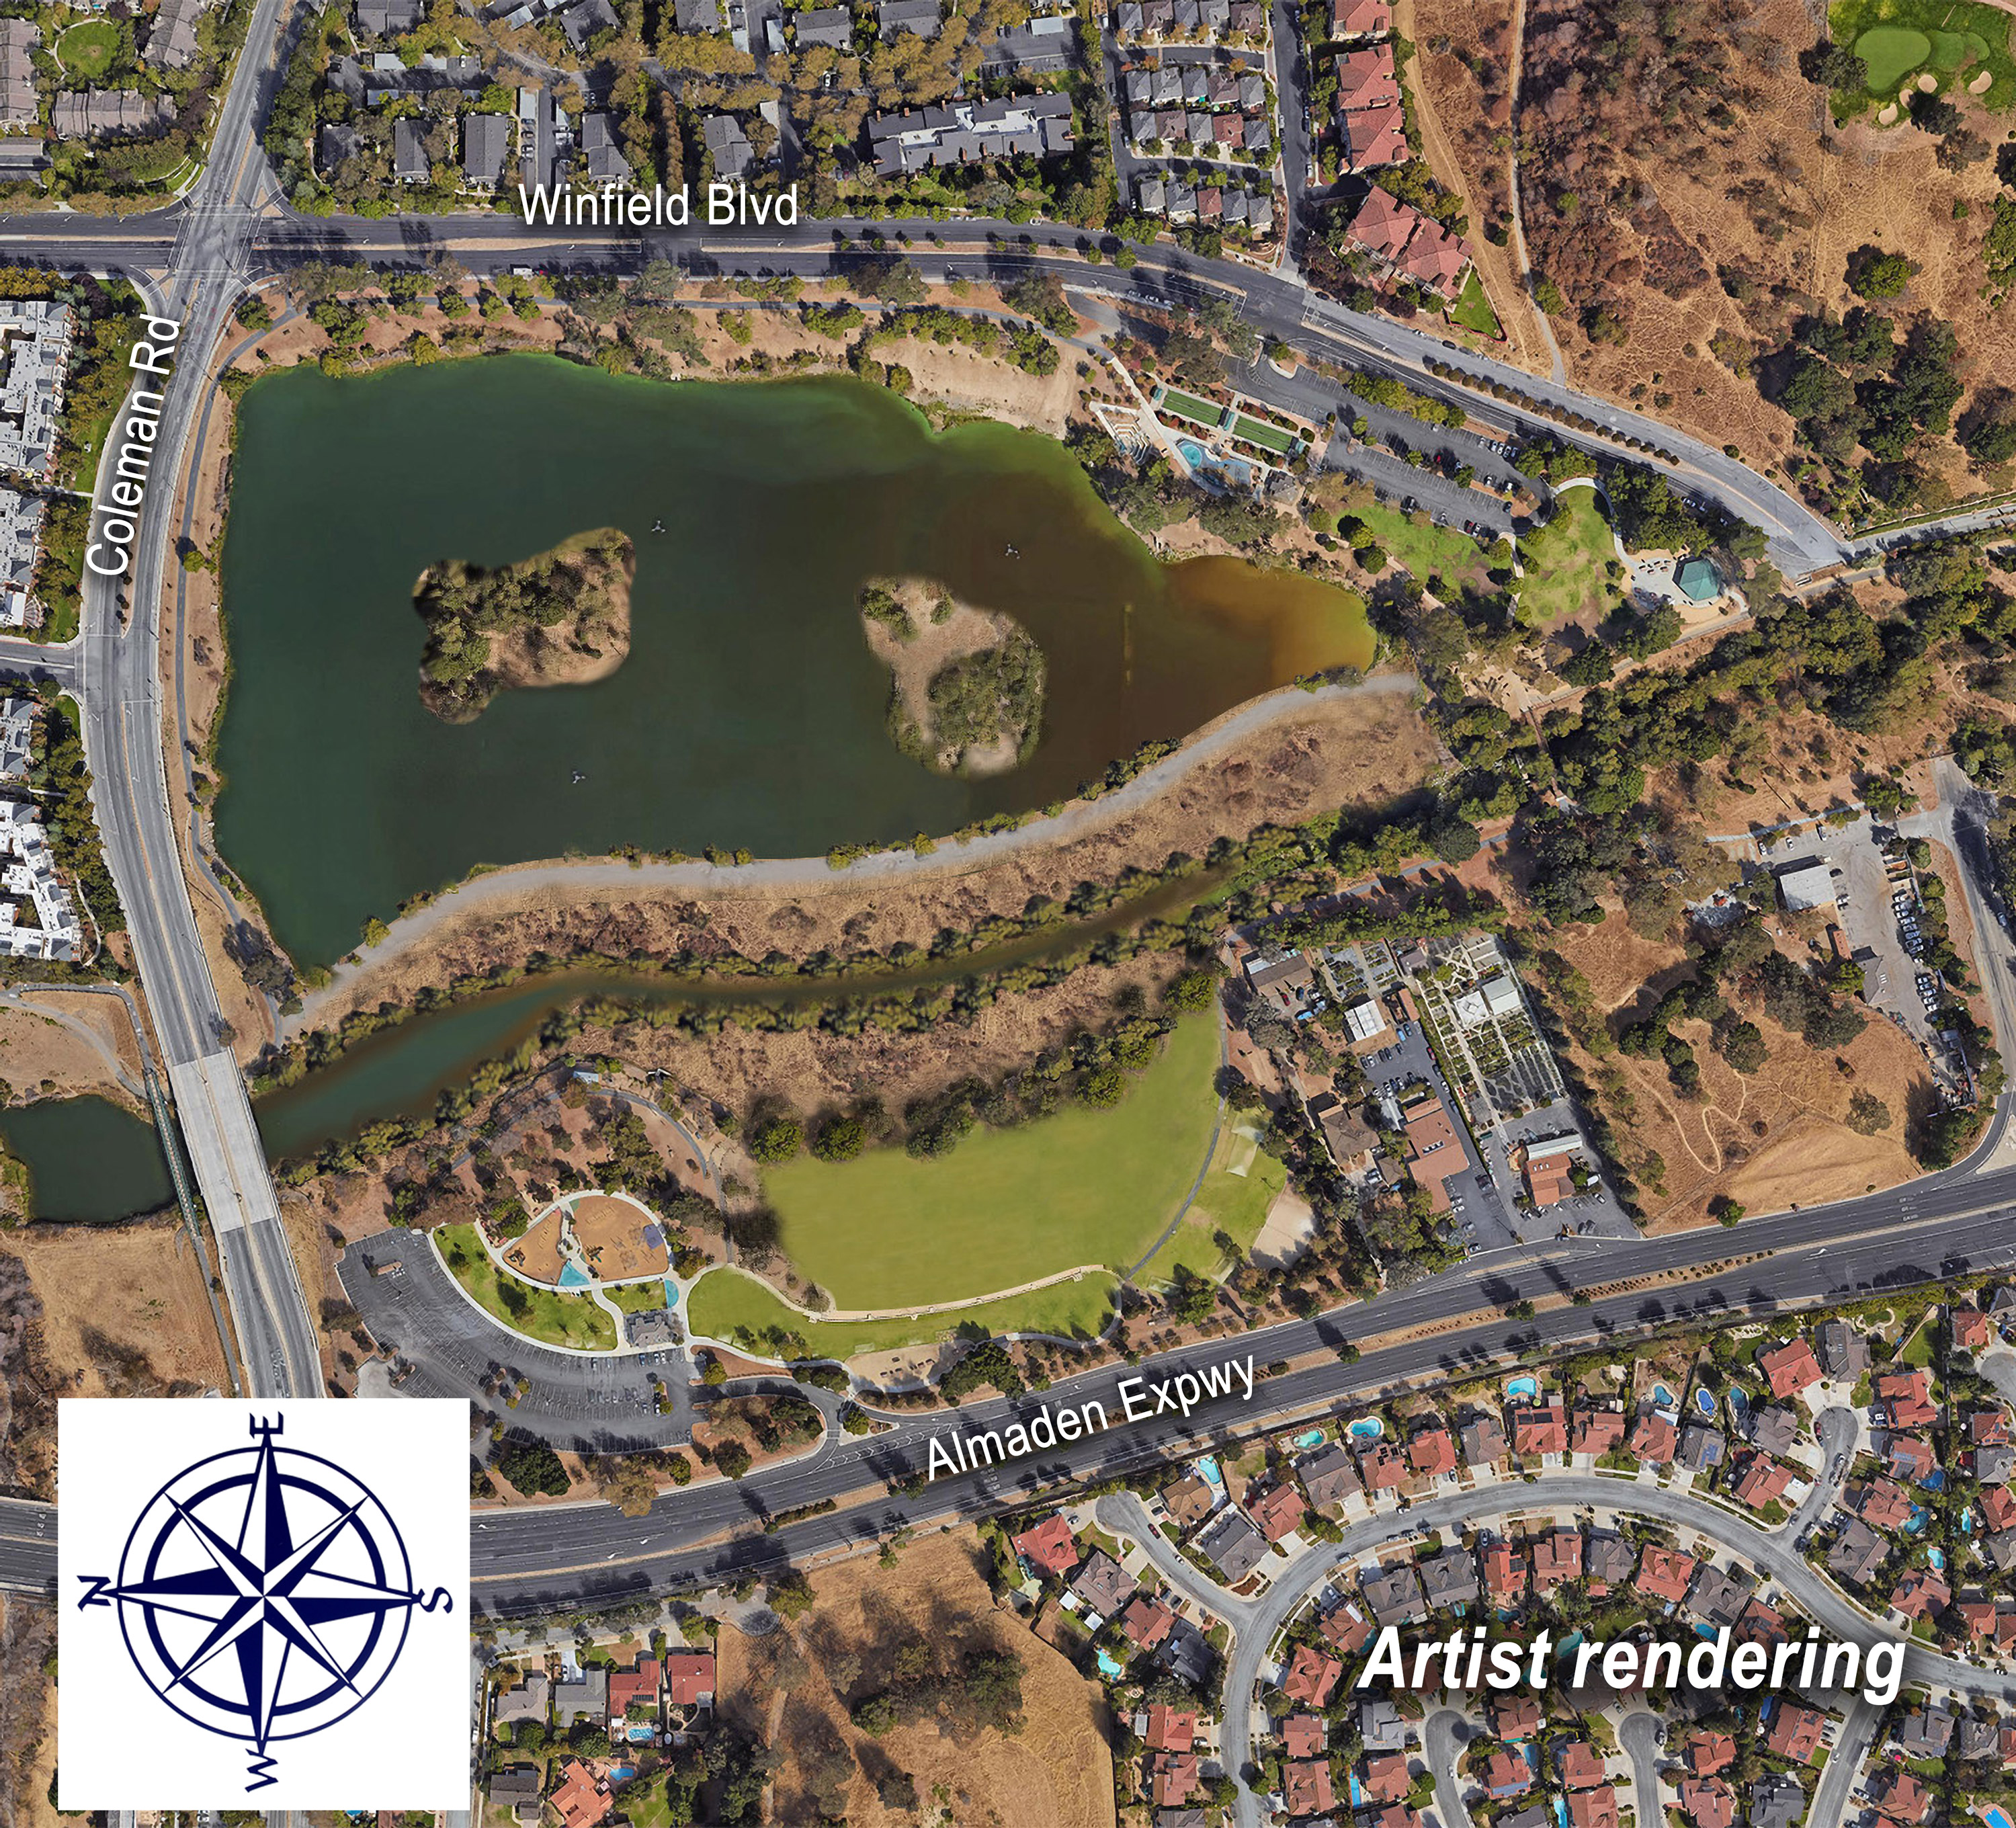 Almaden Lake Project artist rendering